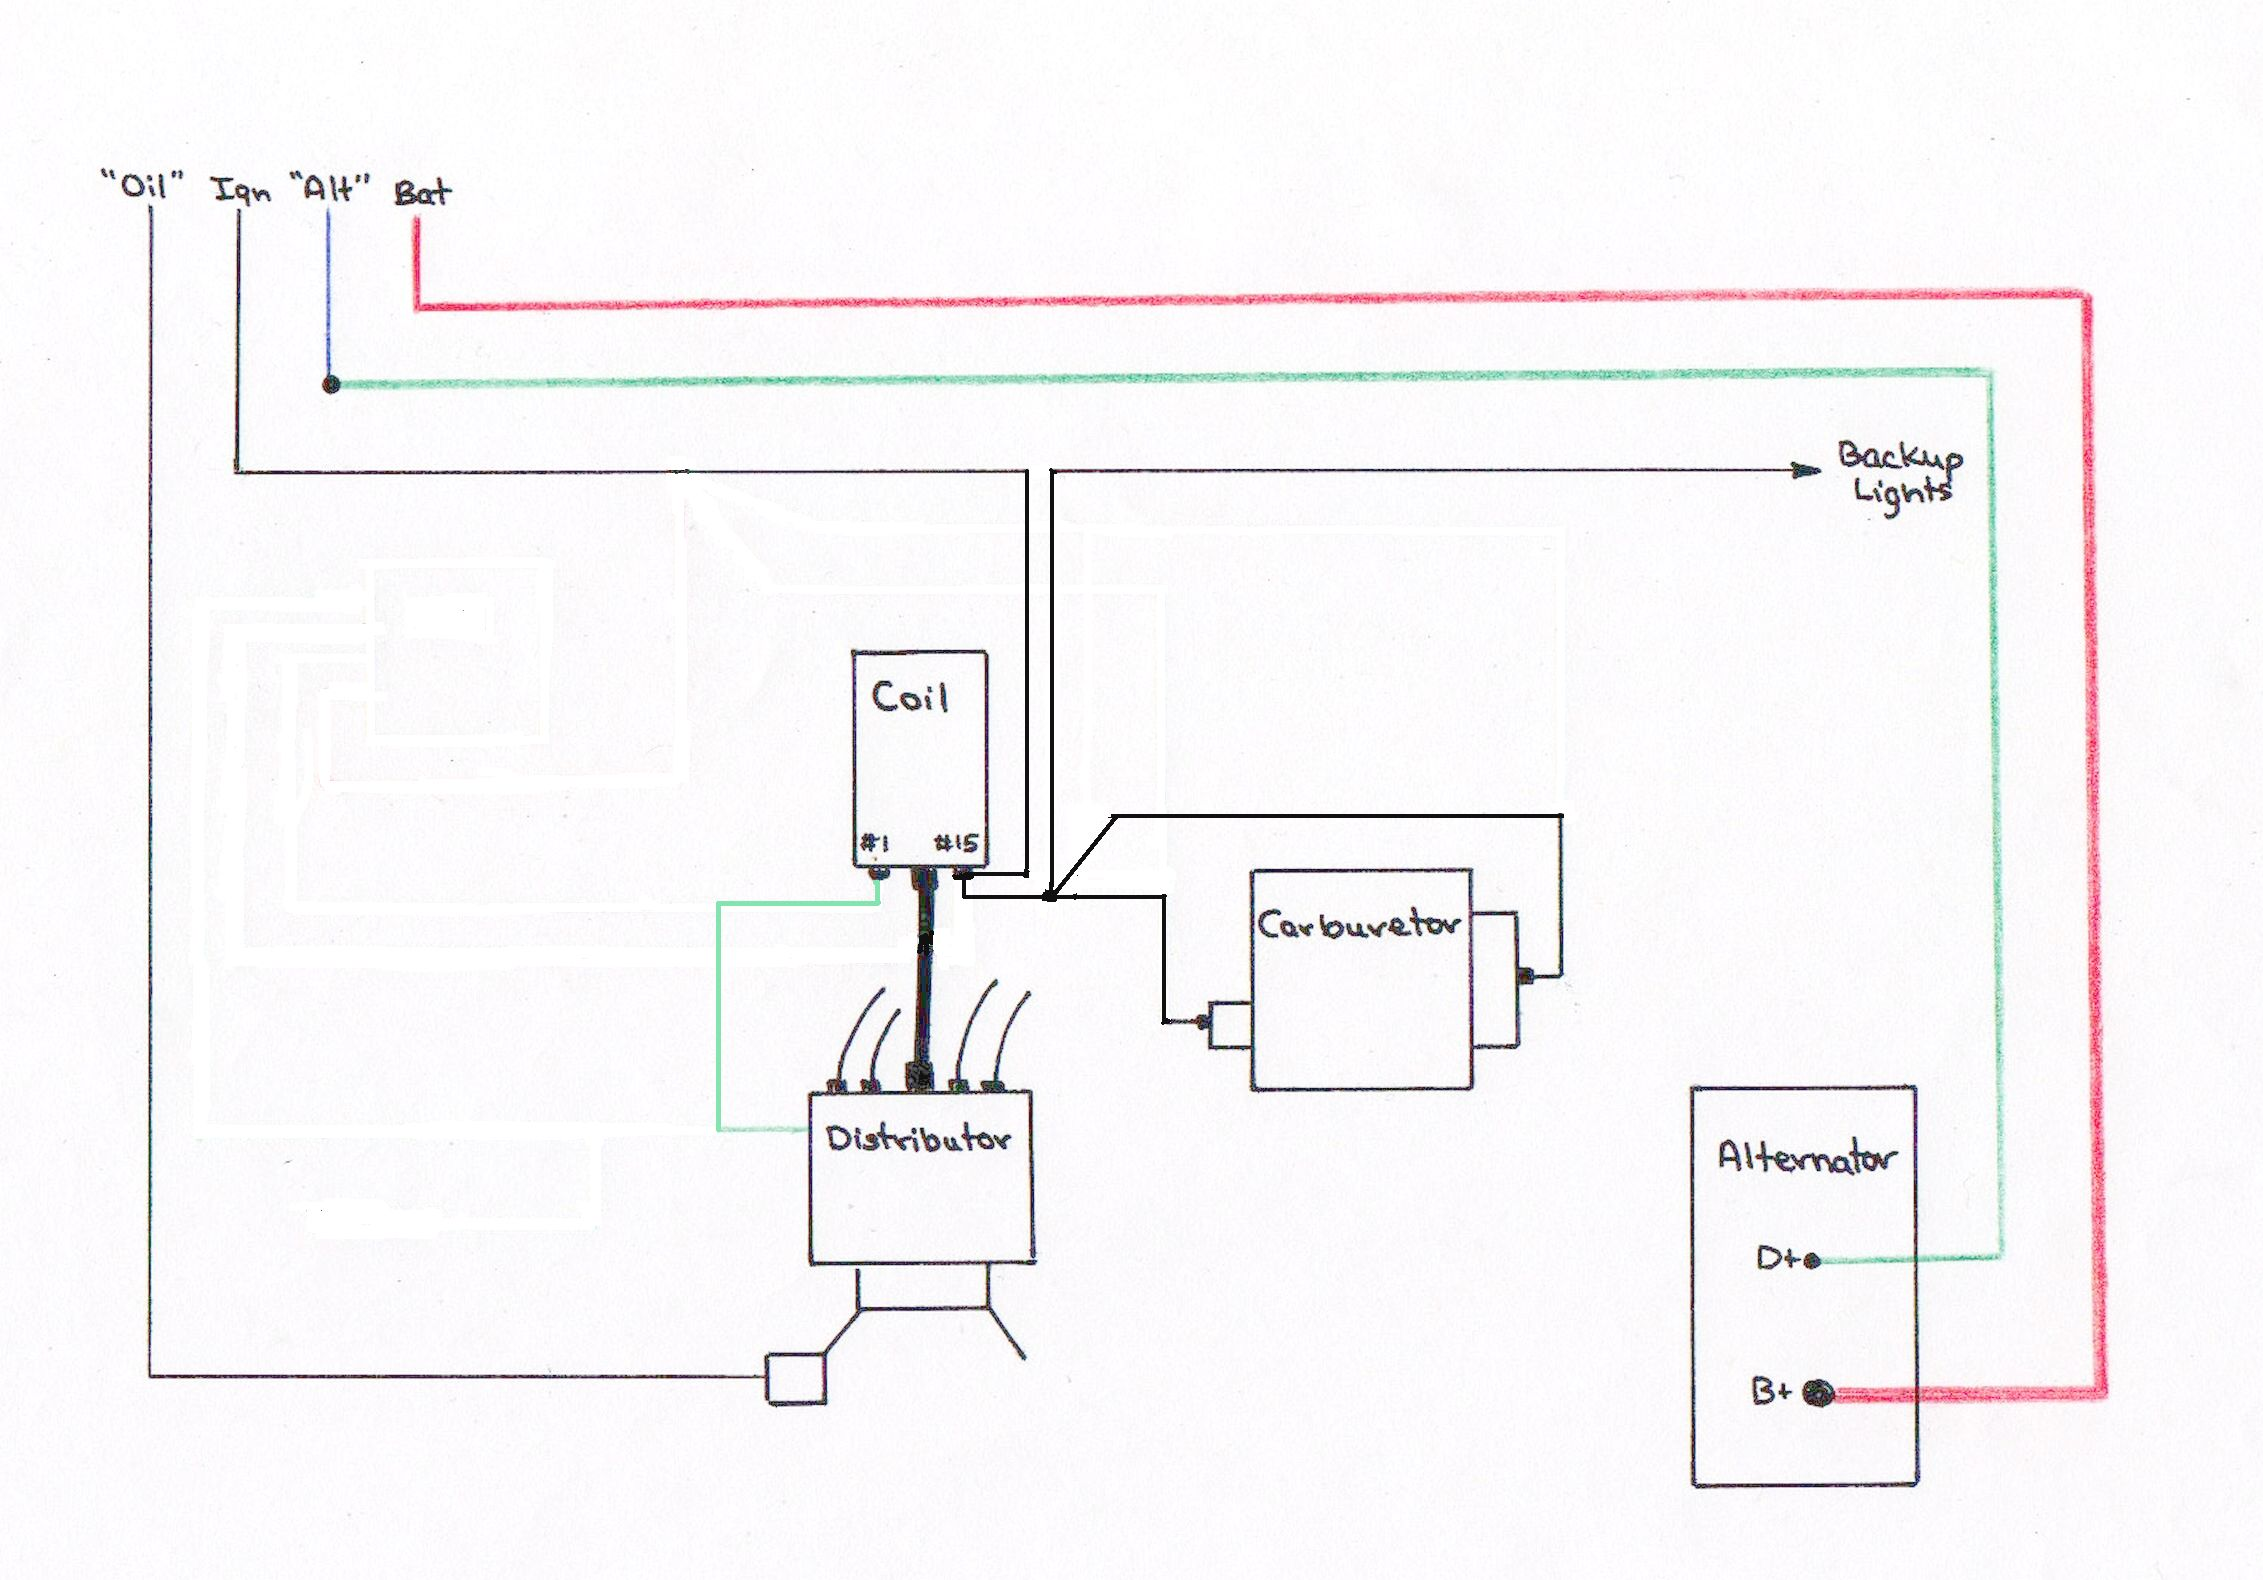 handdrawn_schematic alternator wiring vw alternator wiring diagram at nearapp.co